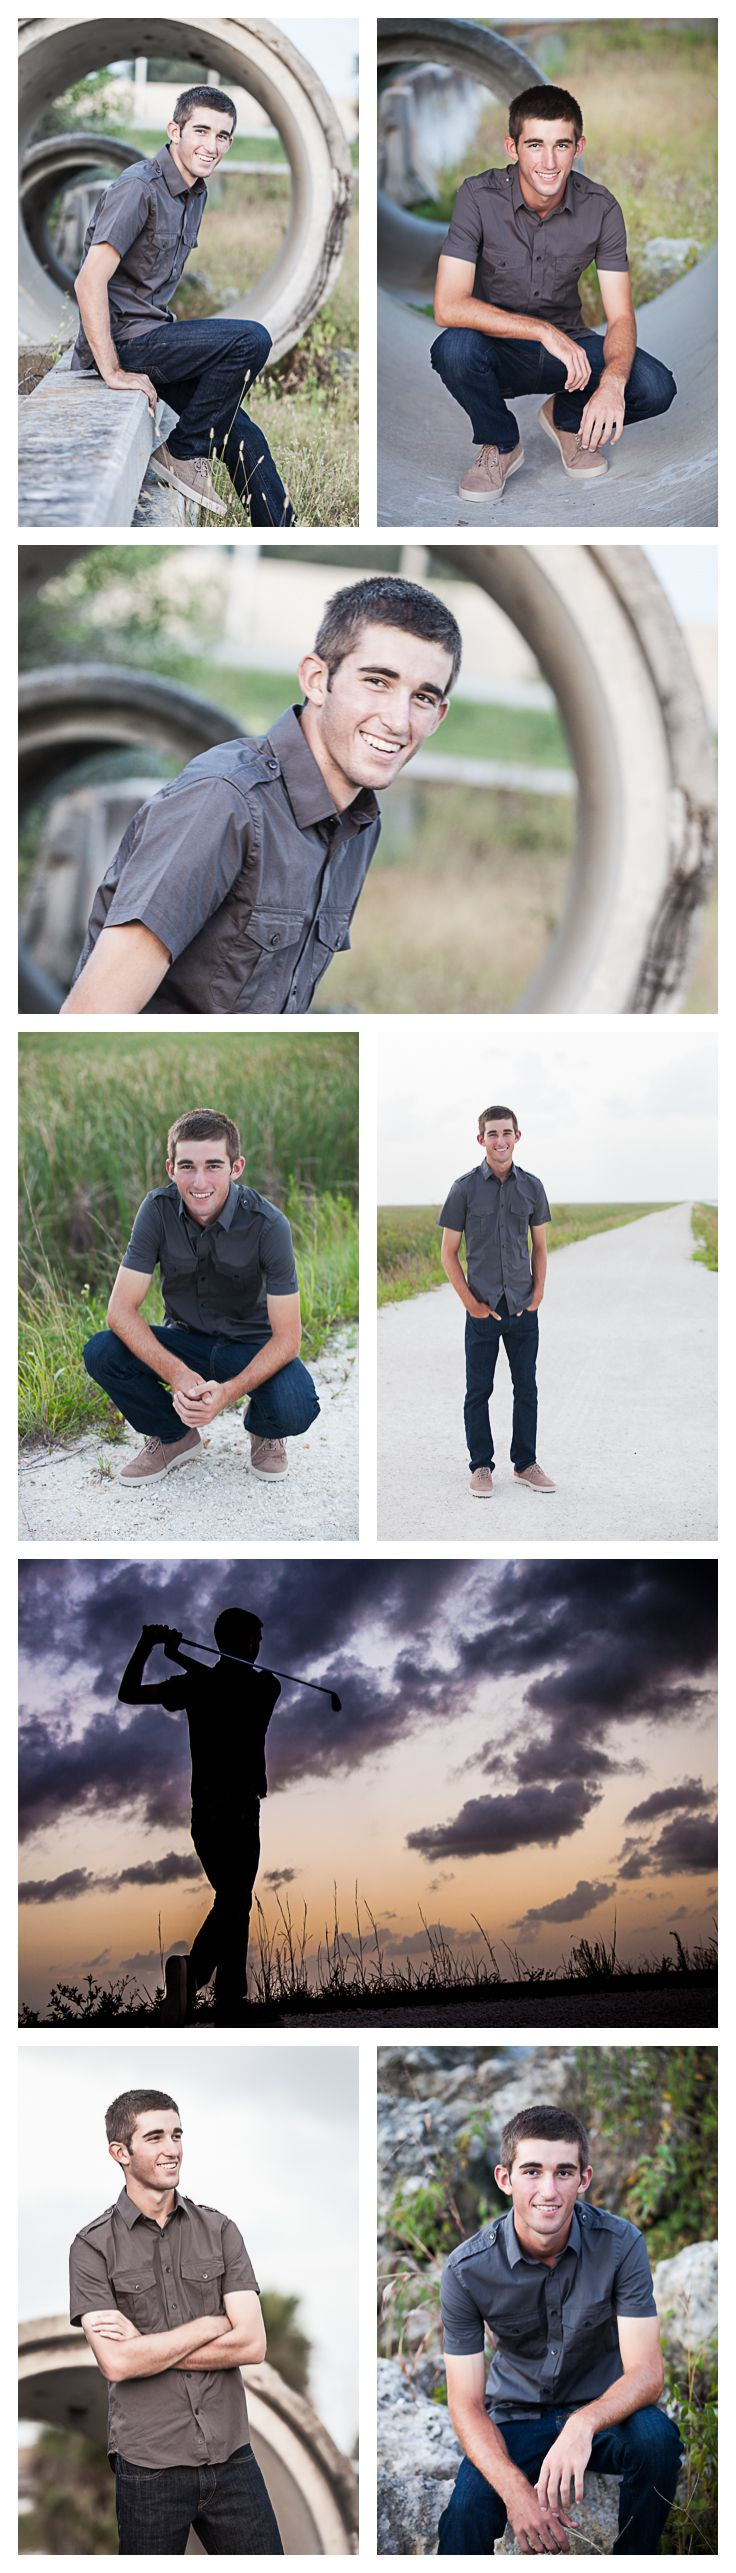 South Florida High School Senior Photography